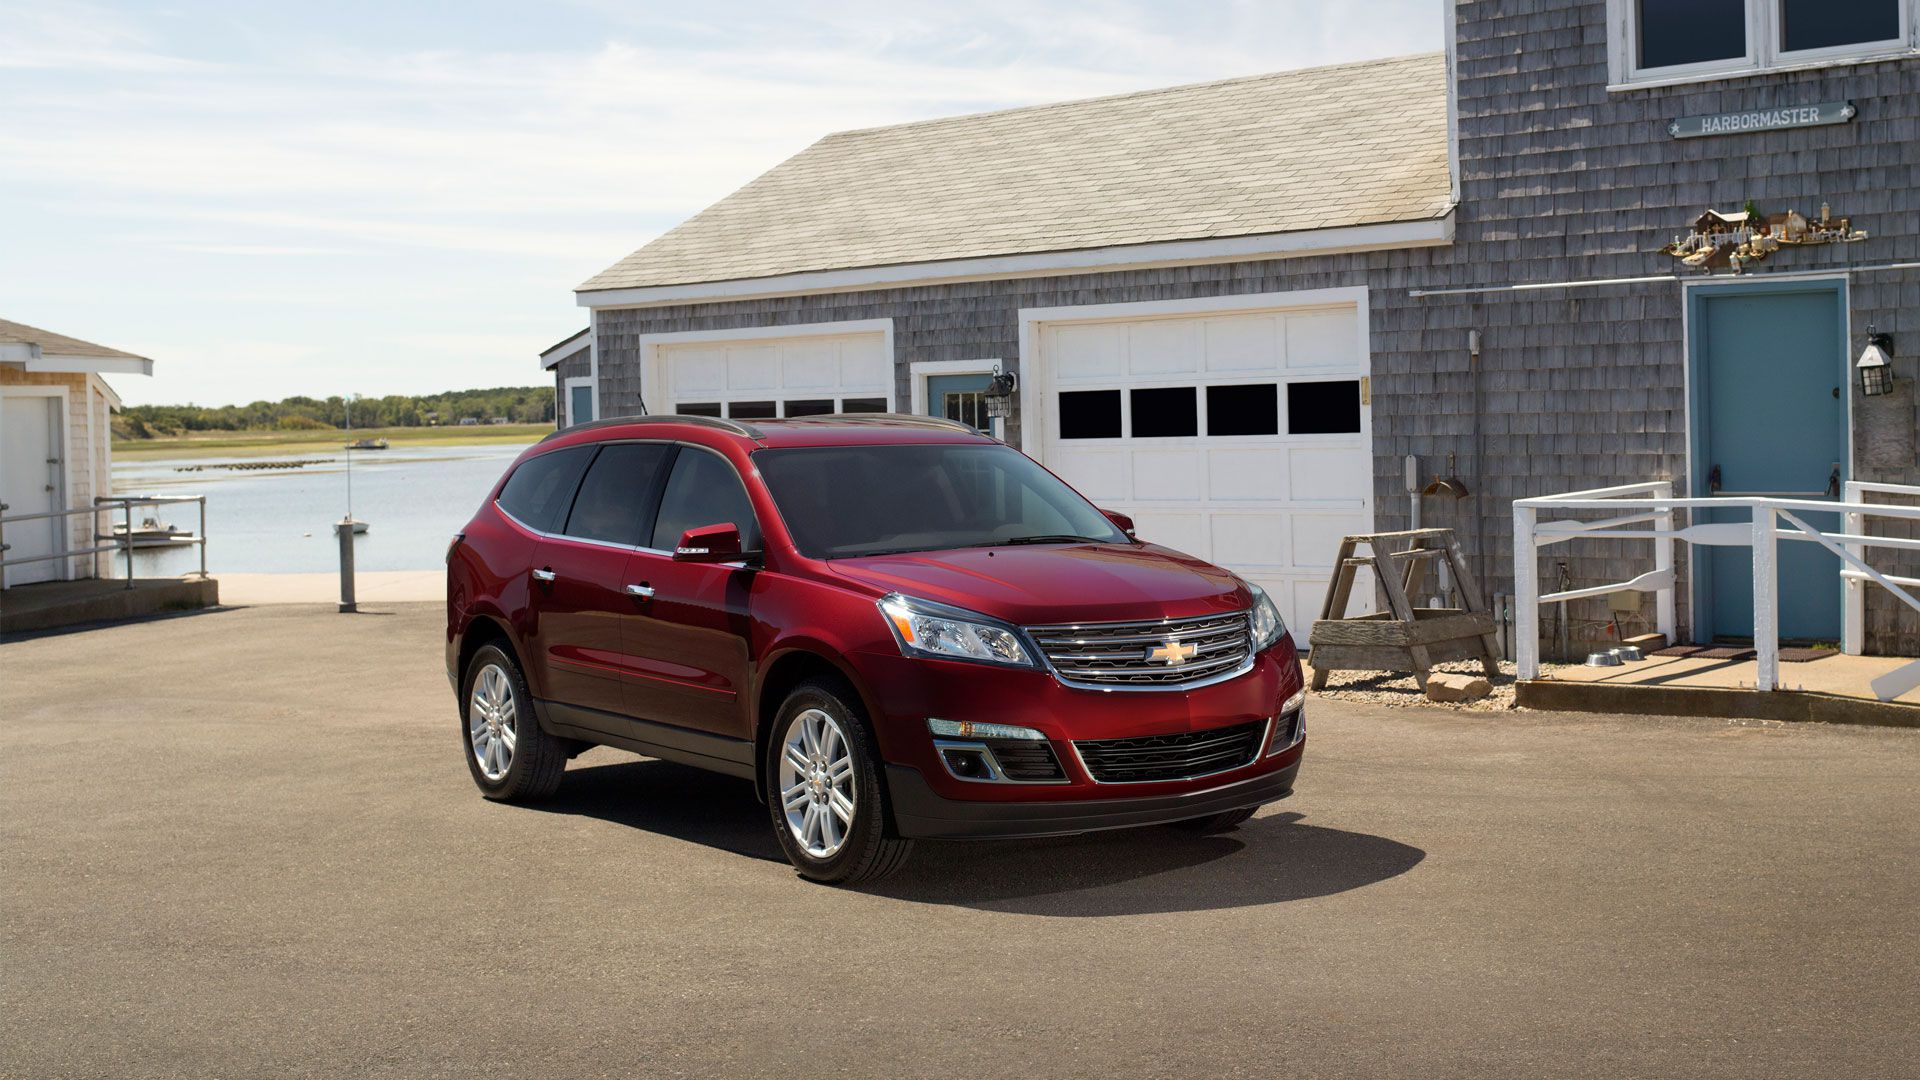 Galles Chevrolet Blog | Galles Chevrolet Blog | News, Updates, and